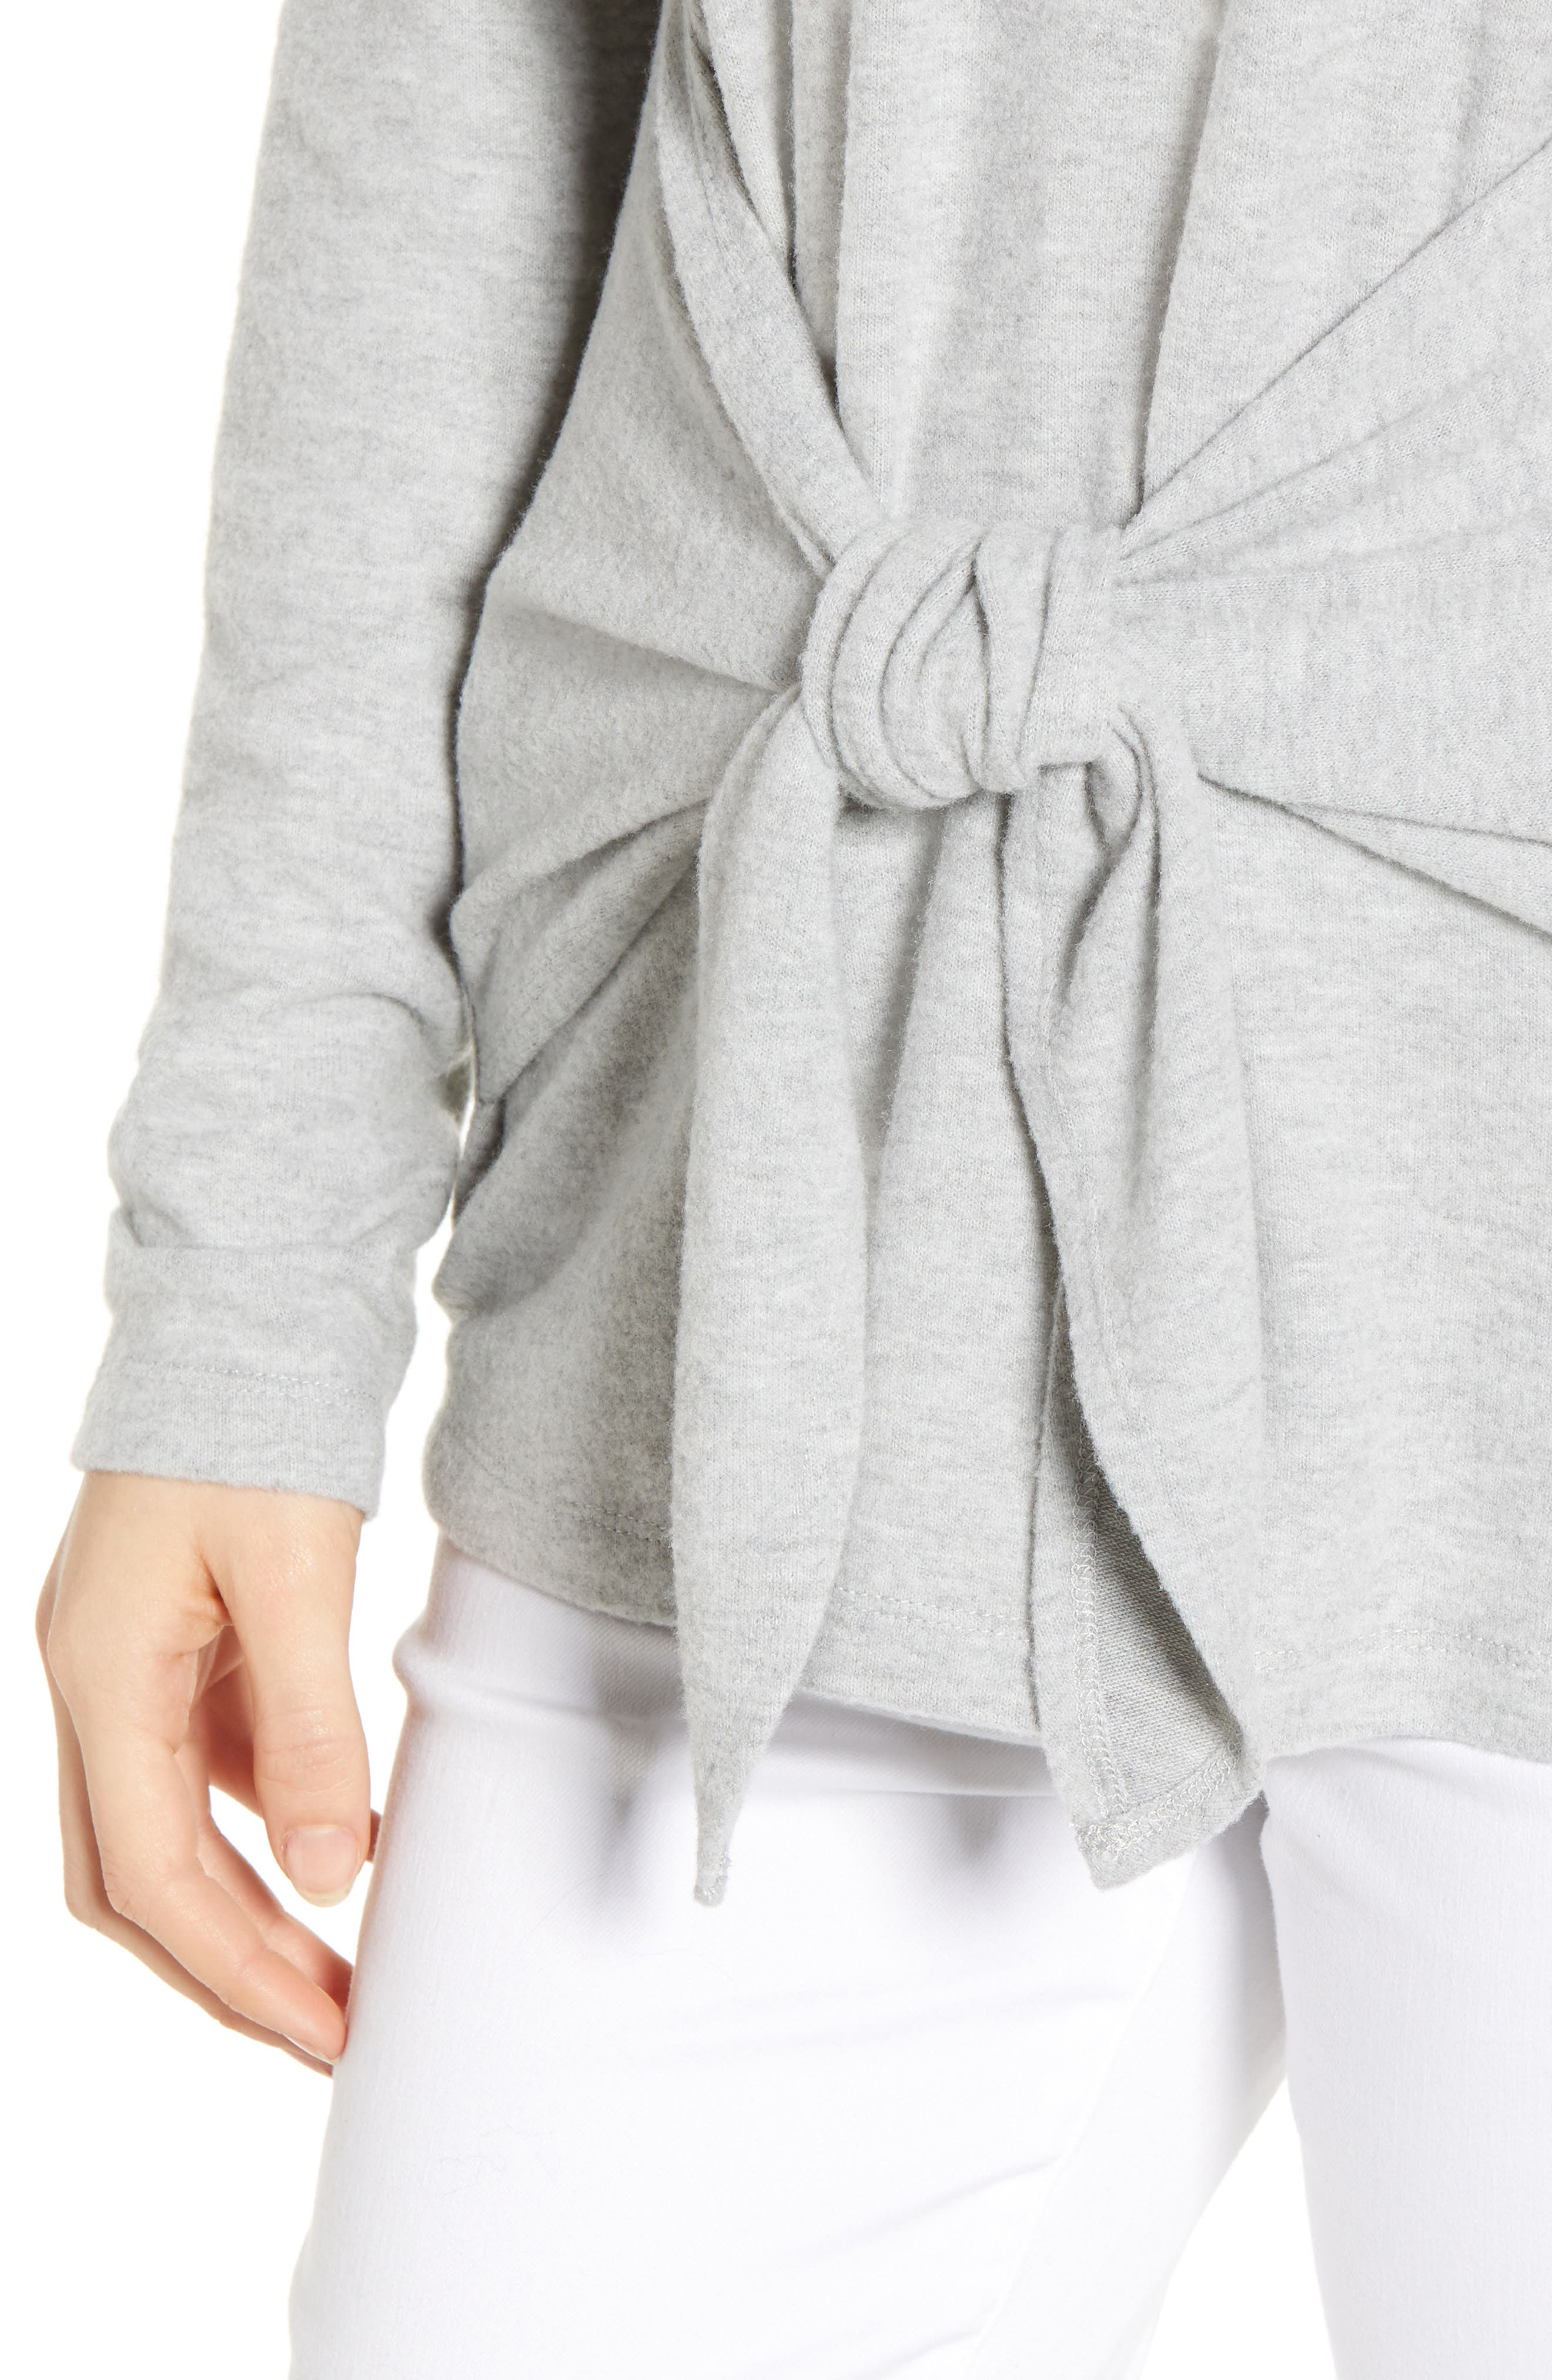 SOCIALITE, Tie Front Top, Alternate thumbnail 4, color, HEATHER GREY